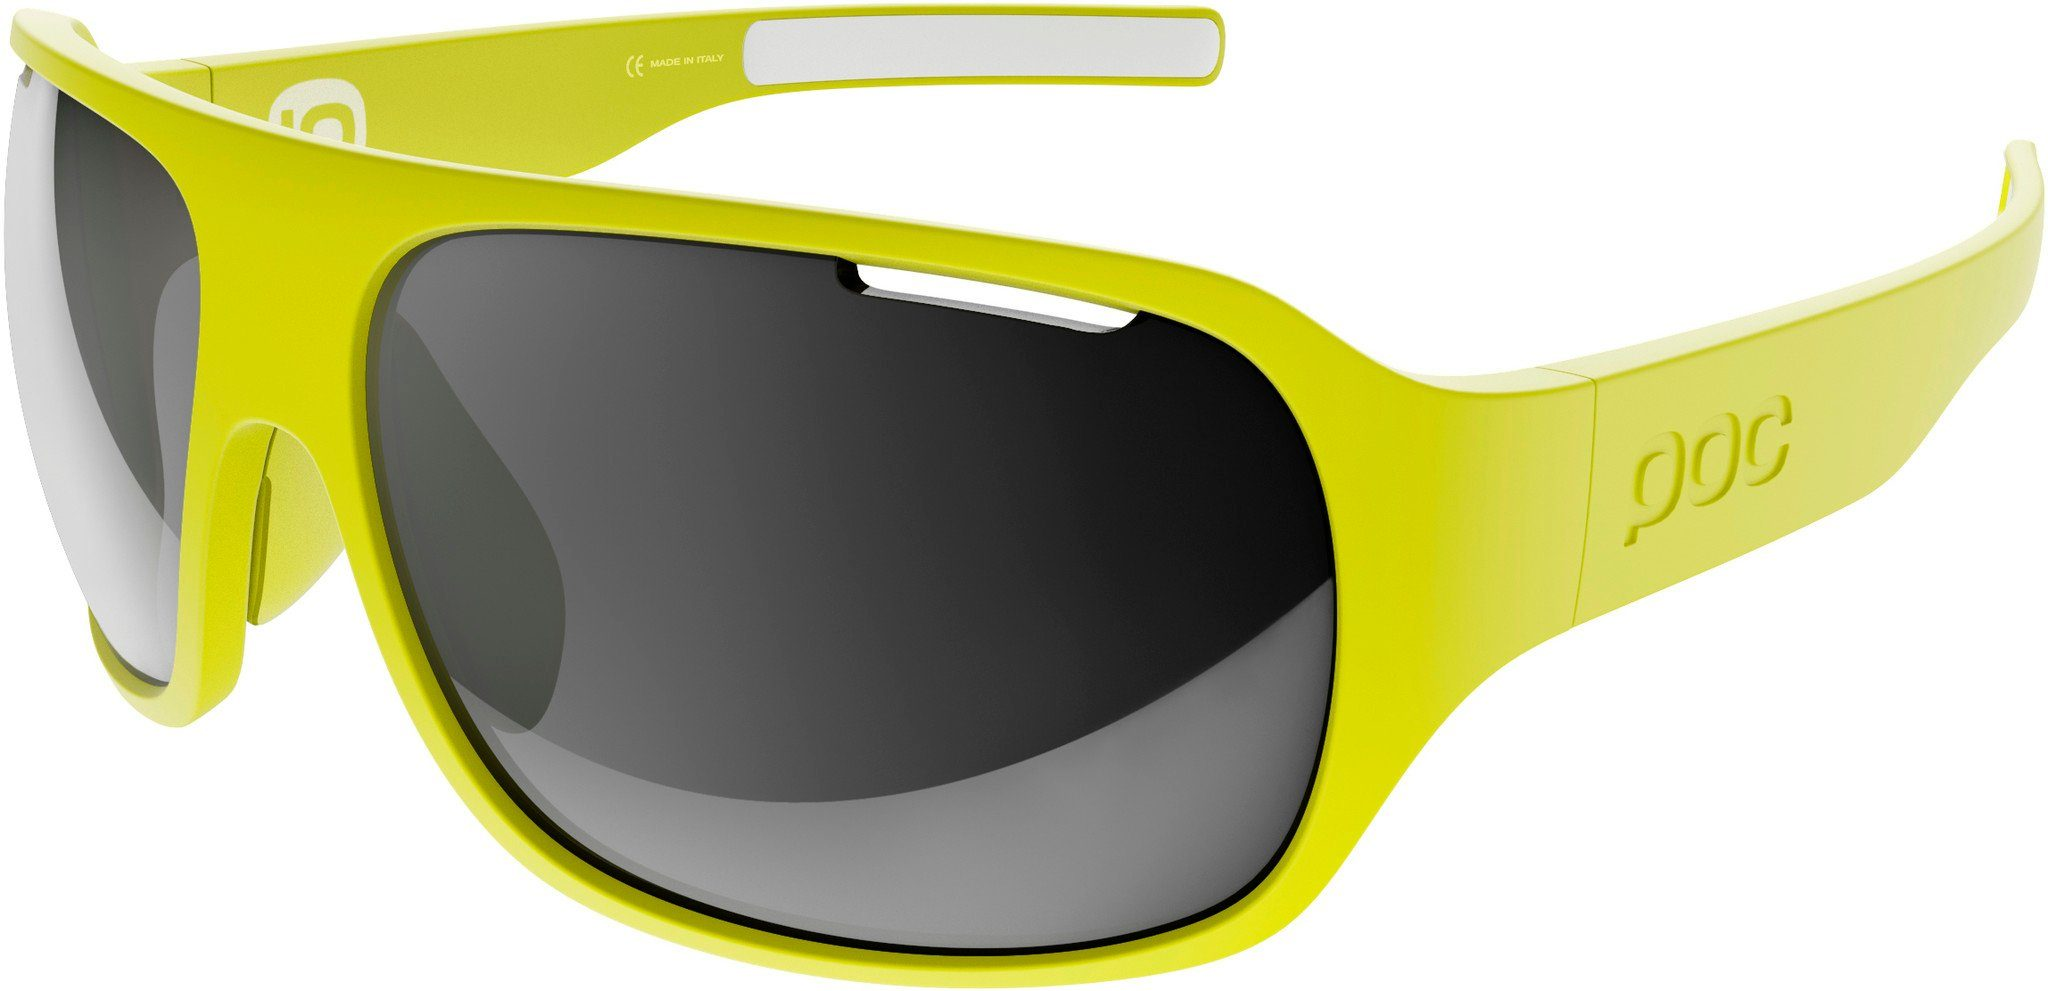 POC Sportbrille »DO Flow Glasses«